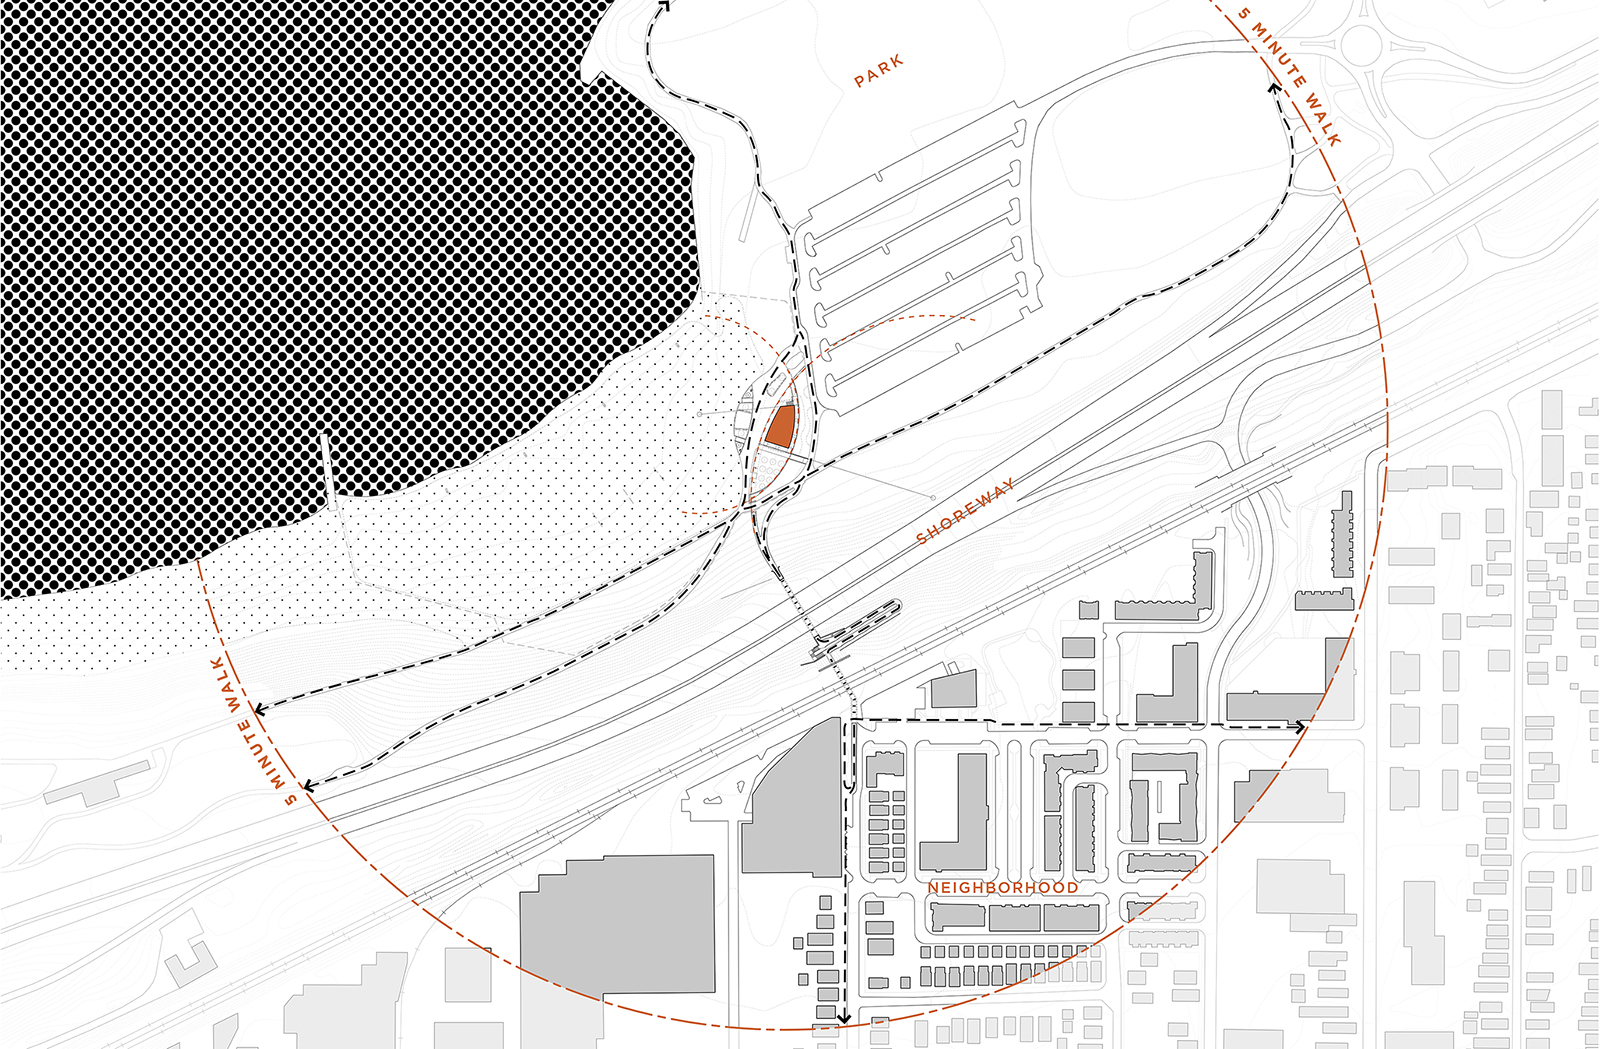 Edgewater_SitePlan_Context_FINAL